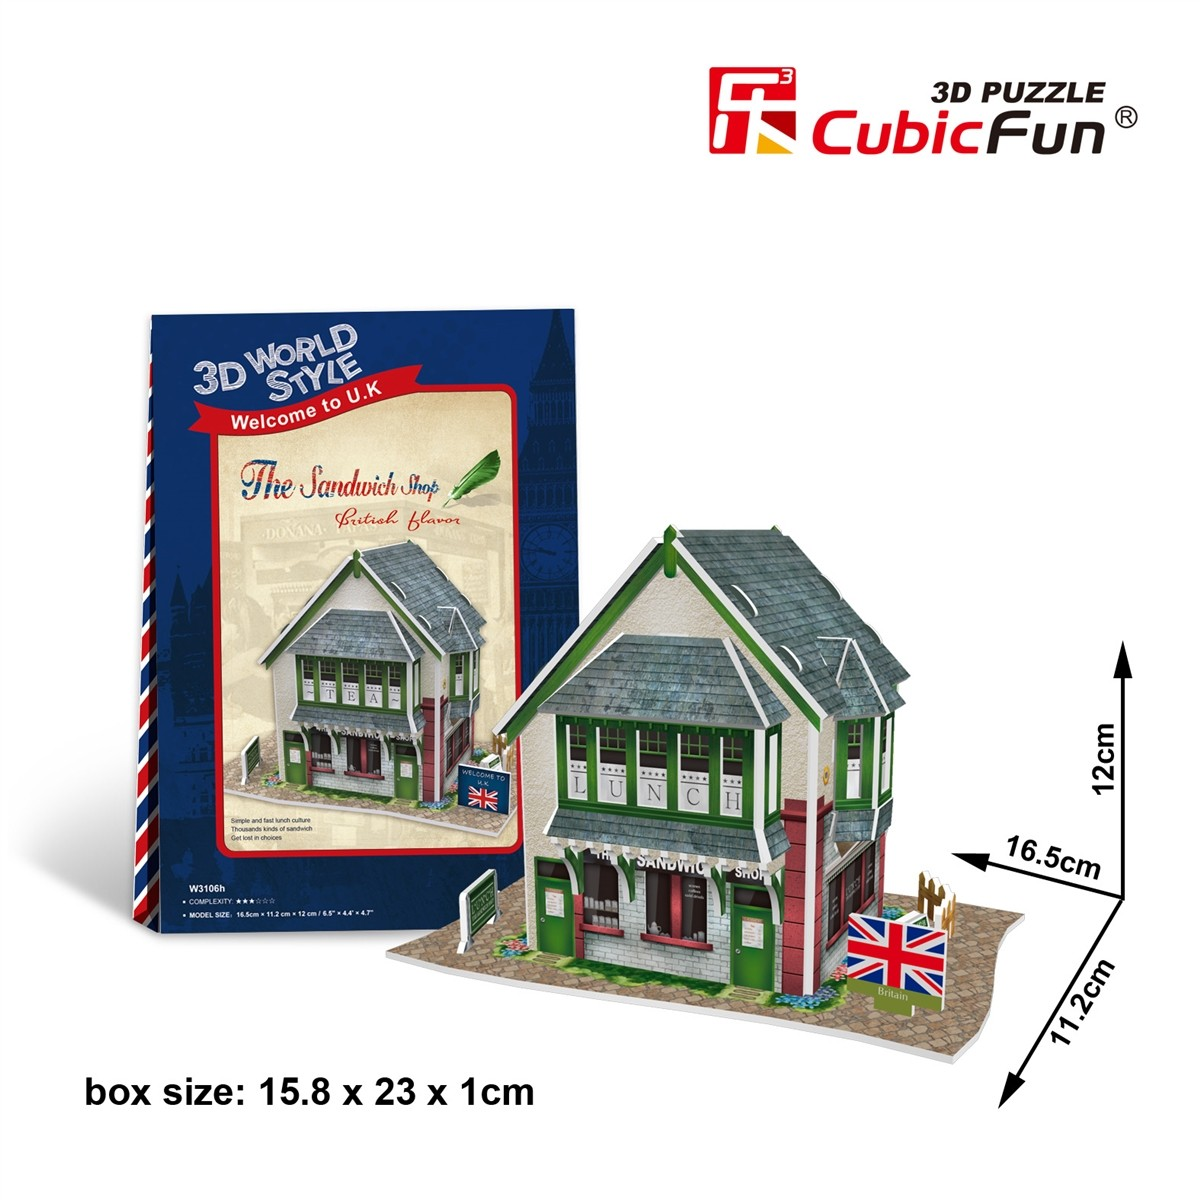 cubic-fun-3d-puzzle-world-style-welcome-to-uk-36-teile-puzzle-cubic-fun-w3106h